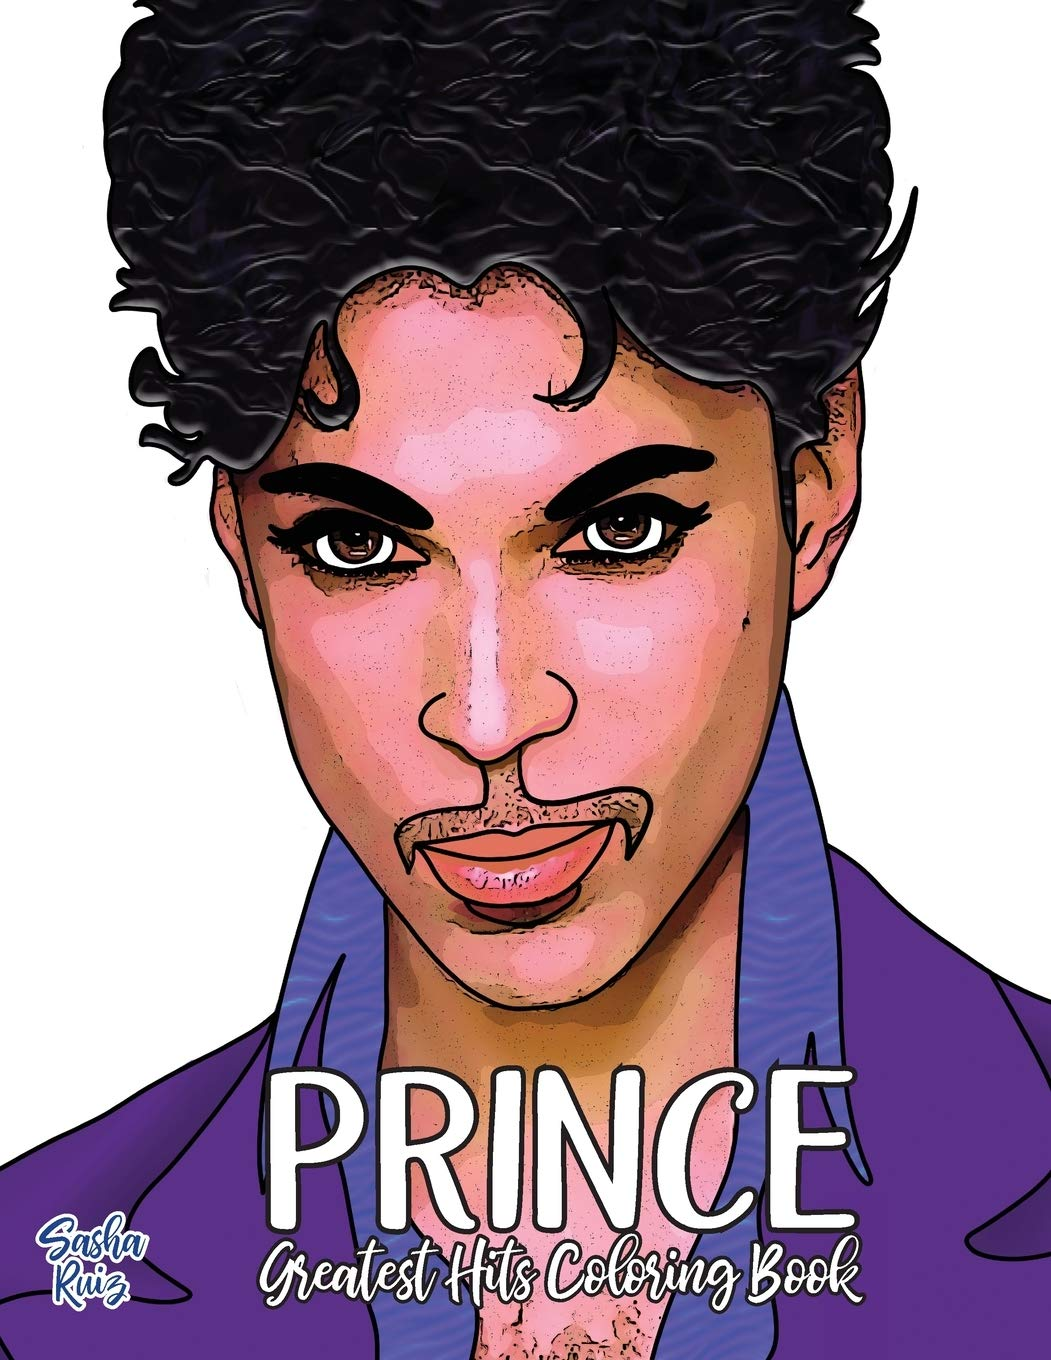 Prince Greatest Hits Coloring Book